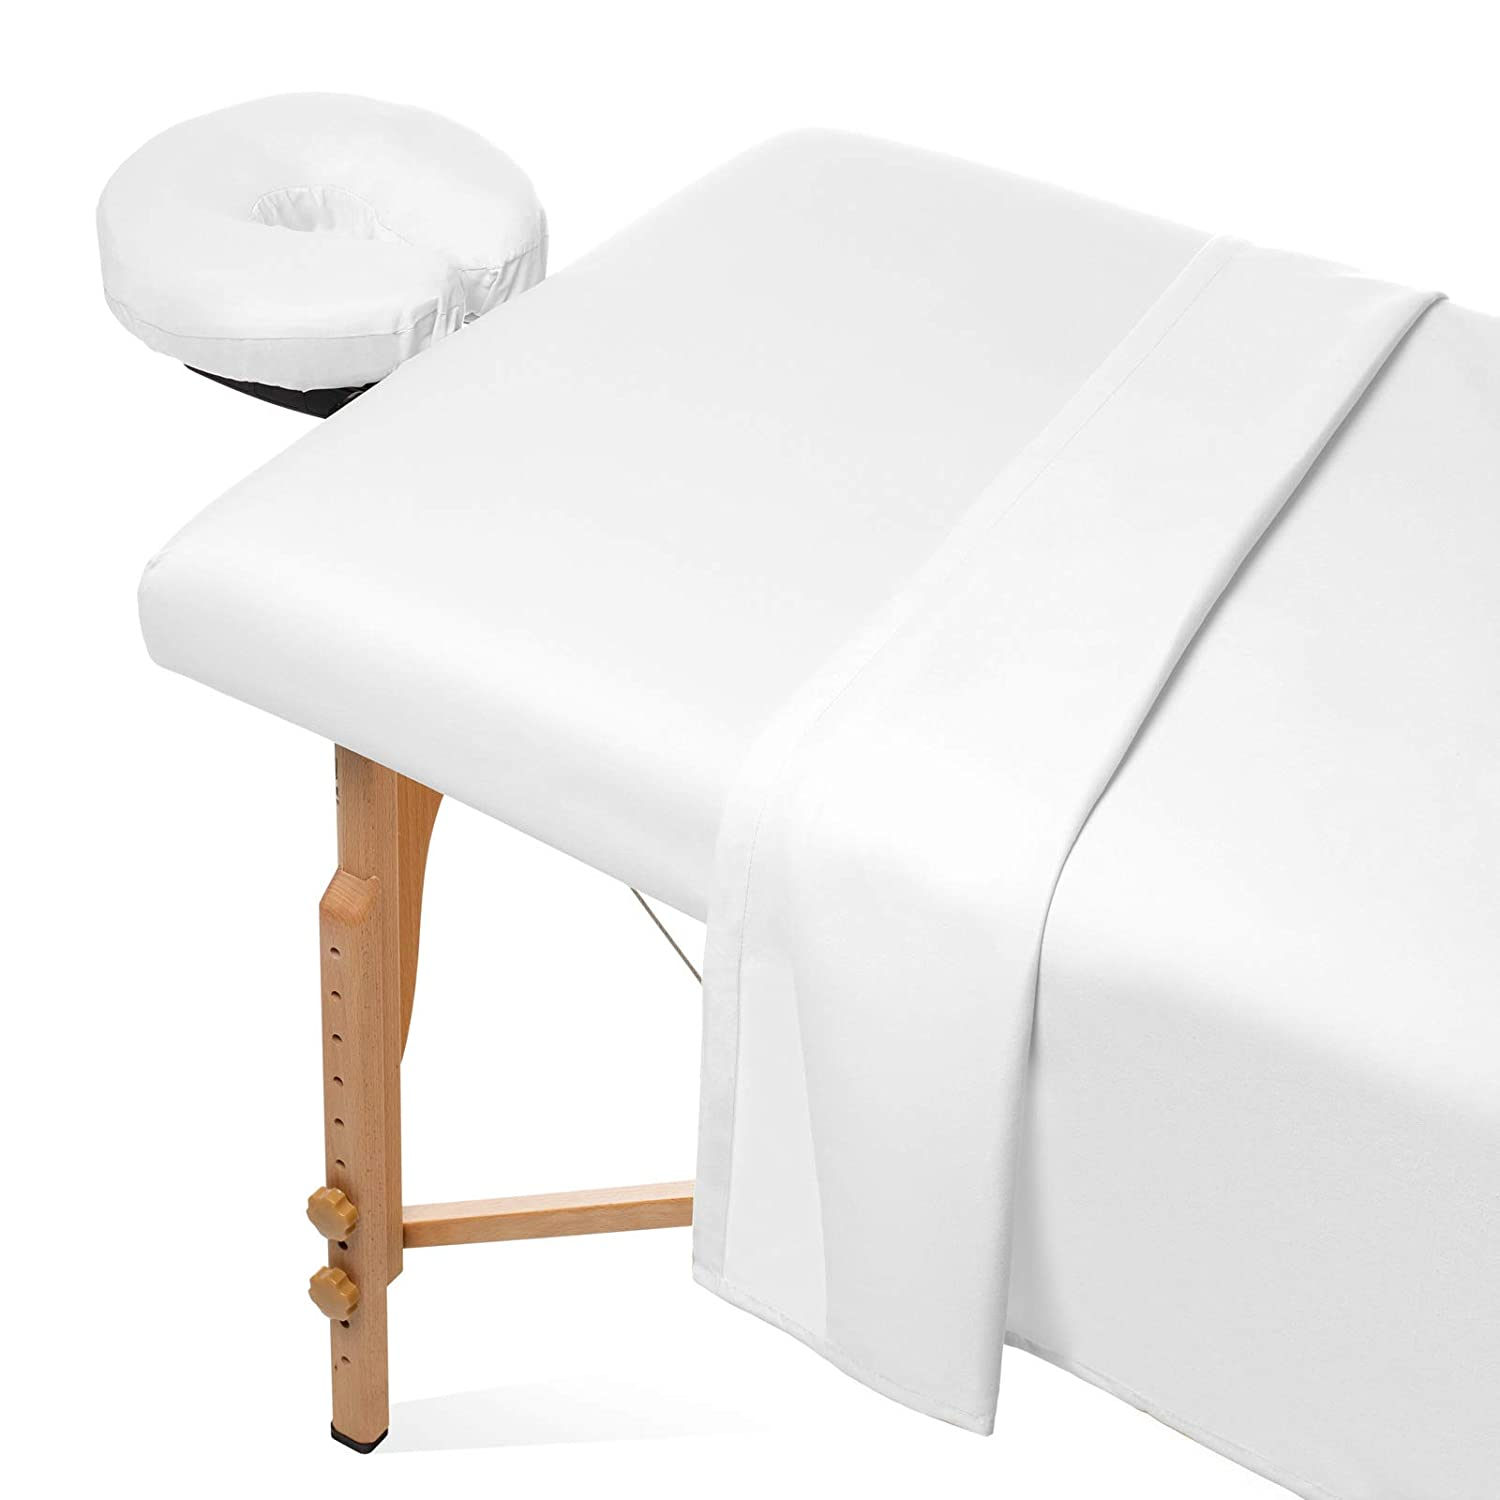 Saloniture 3-Piece Microfiber Massage Table Sheet Set - Premium Facial Bed Cover - Includes Flat and Fitted Sheets with Face Cradle Cover - White : Beauty